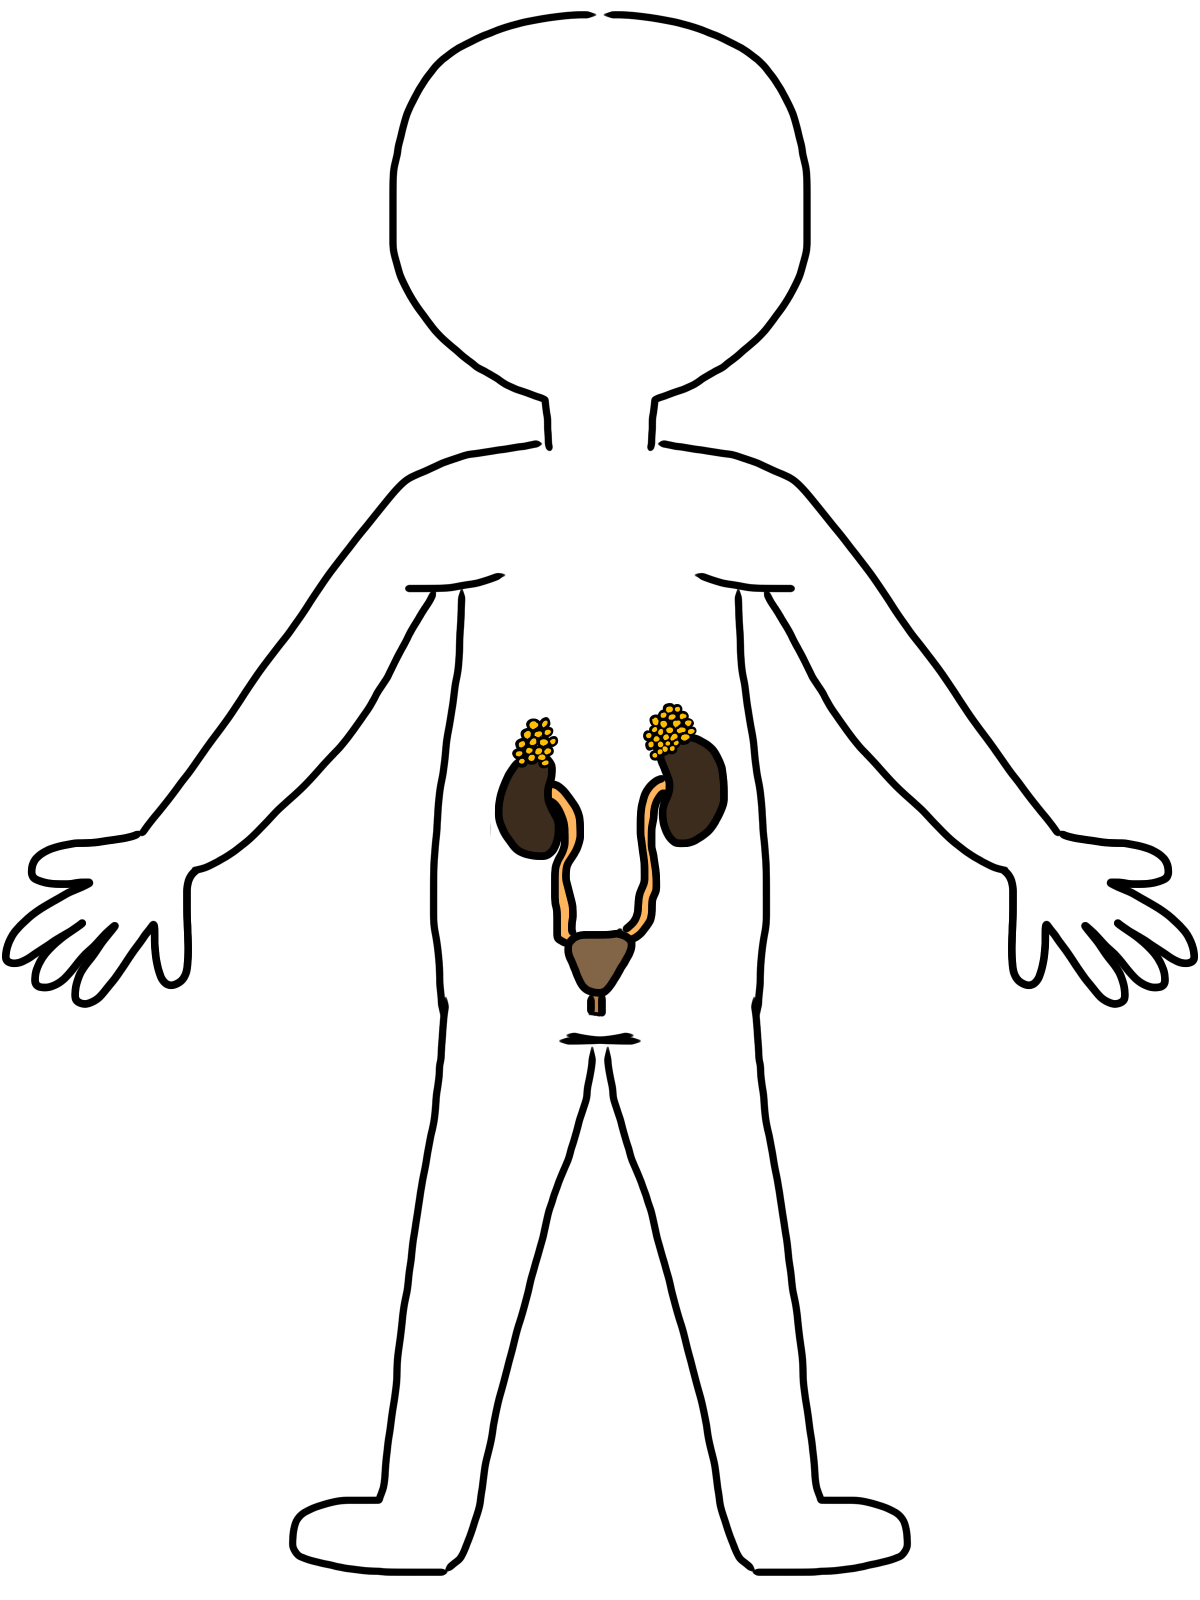 Free Urinary Cliparts Download Free Clip Art Free Clip